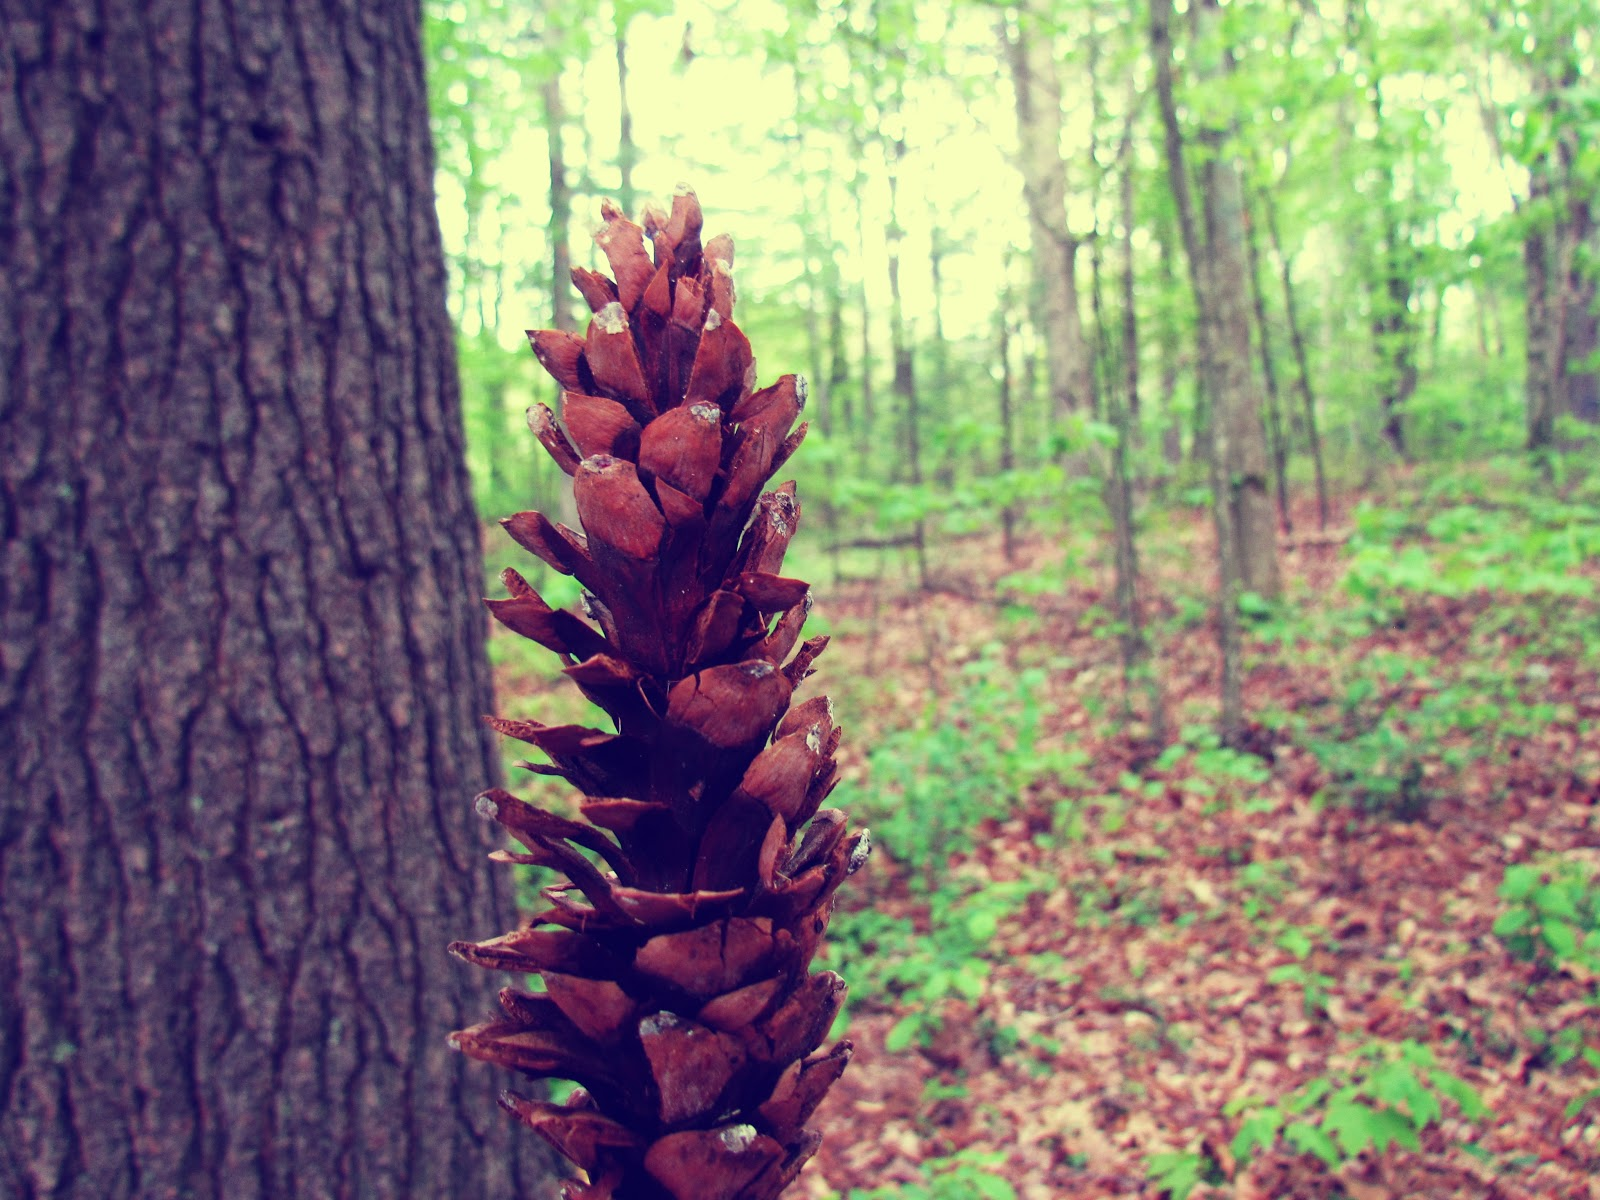 A woman holding a pine cone in the woods of New England after a summer rainstorm in mother nature